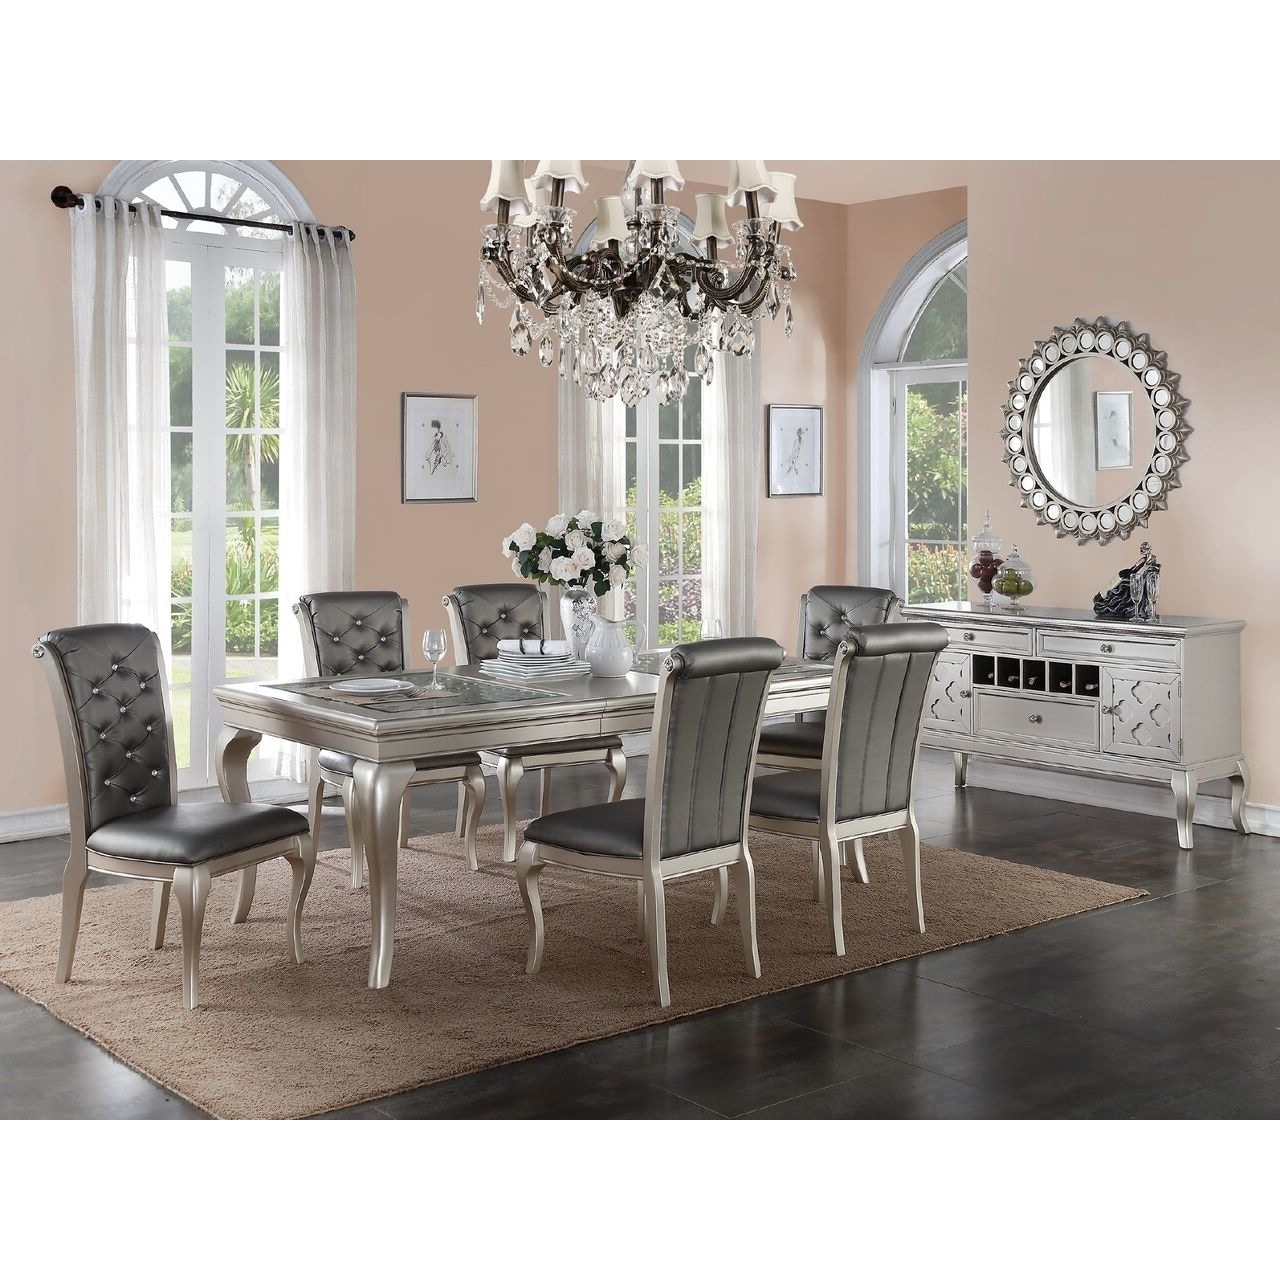 Bermington Silver Wood And Fabric Dining Chairs (Set Of 6)   Free Shipping  Today   Overstock   19617088